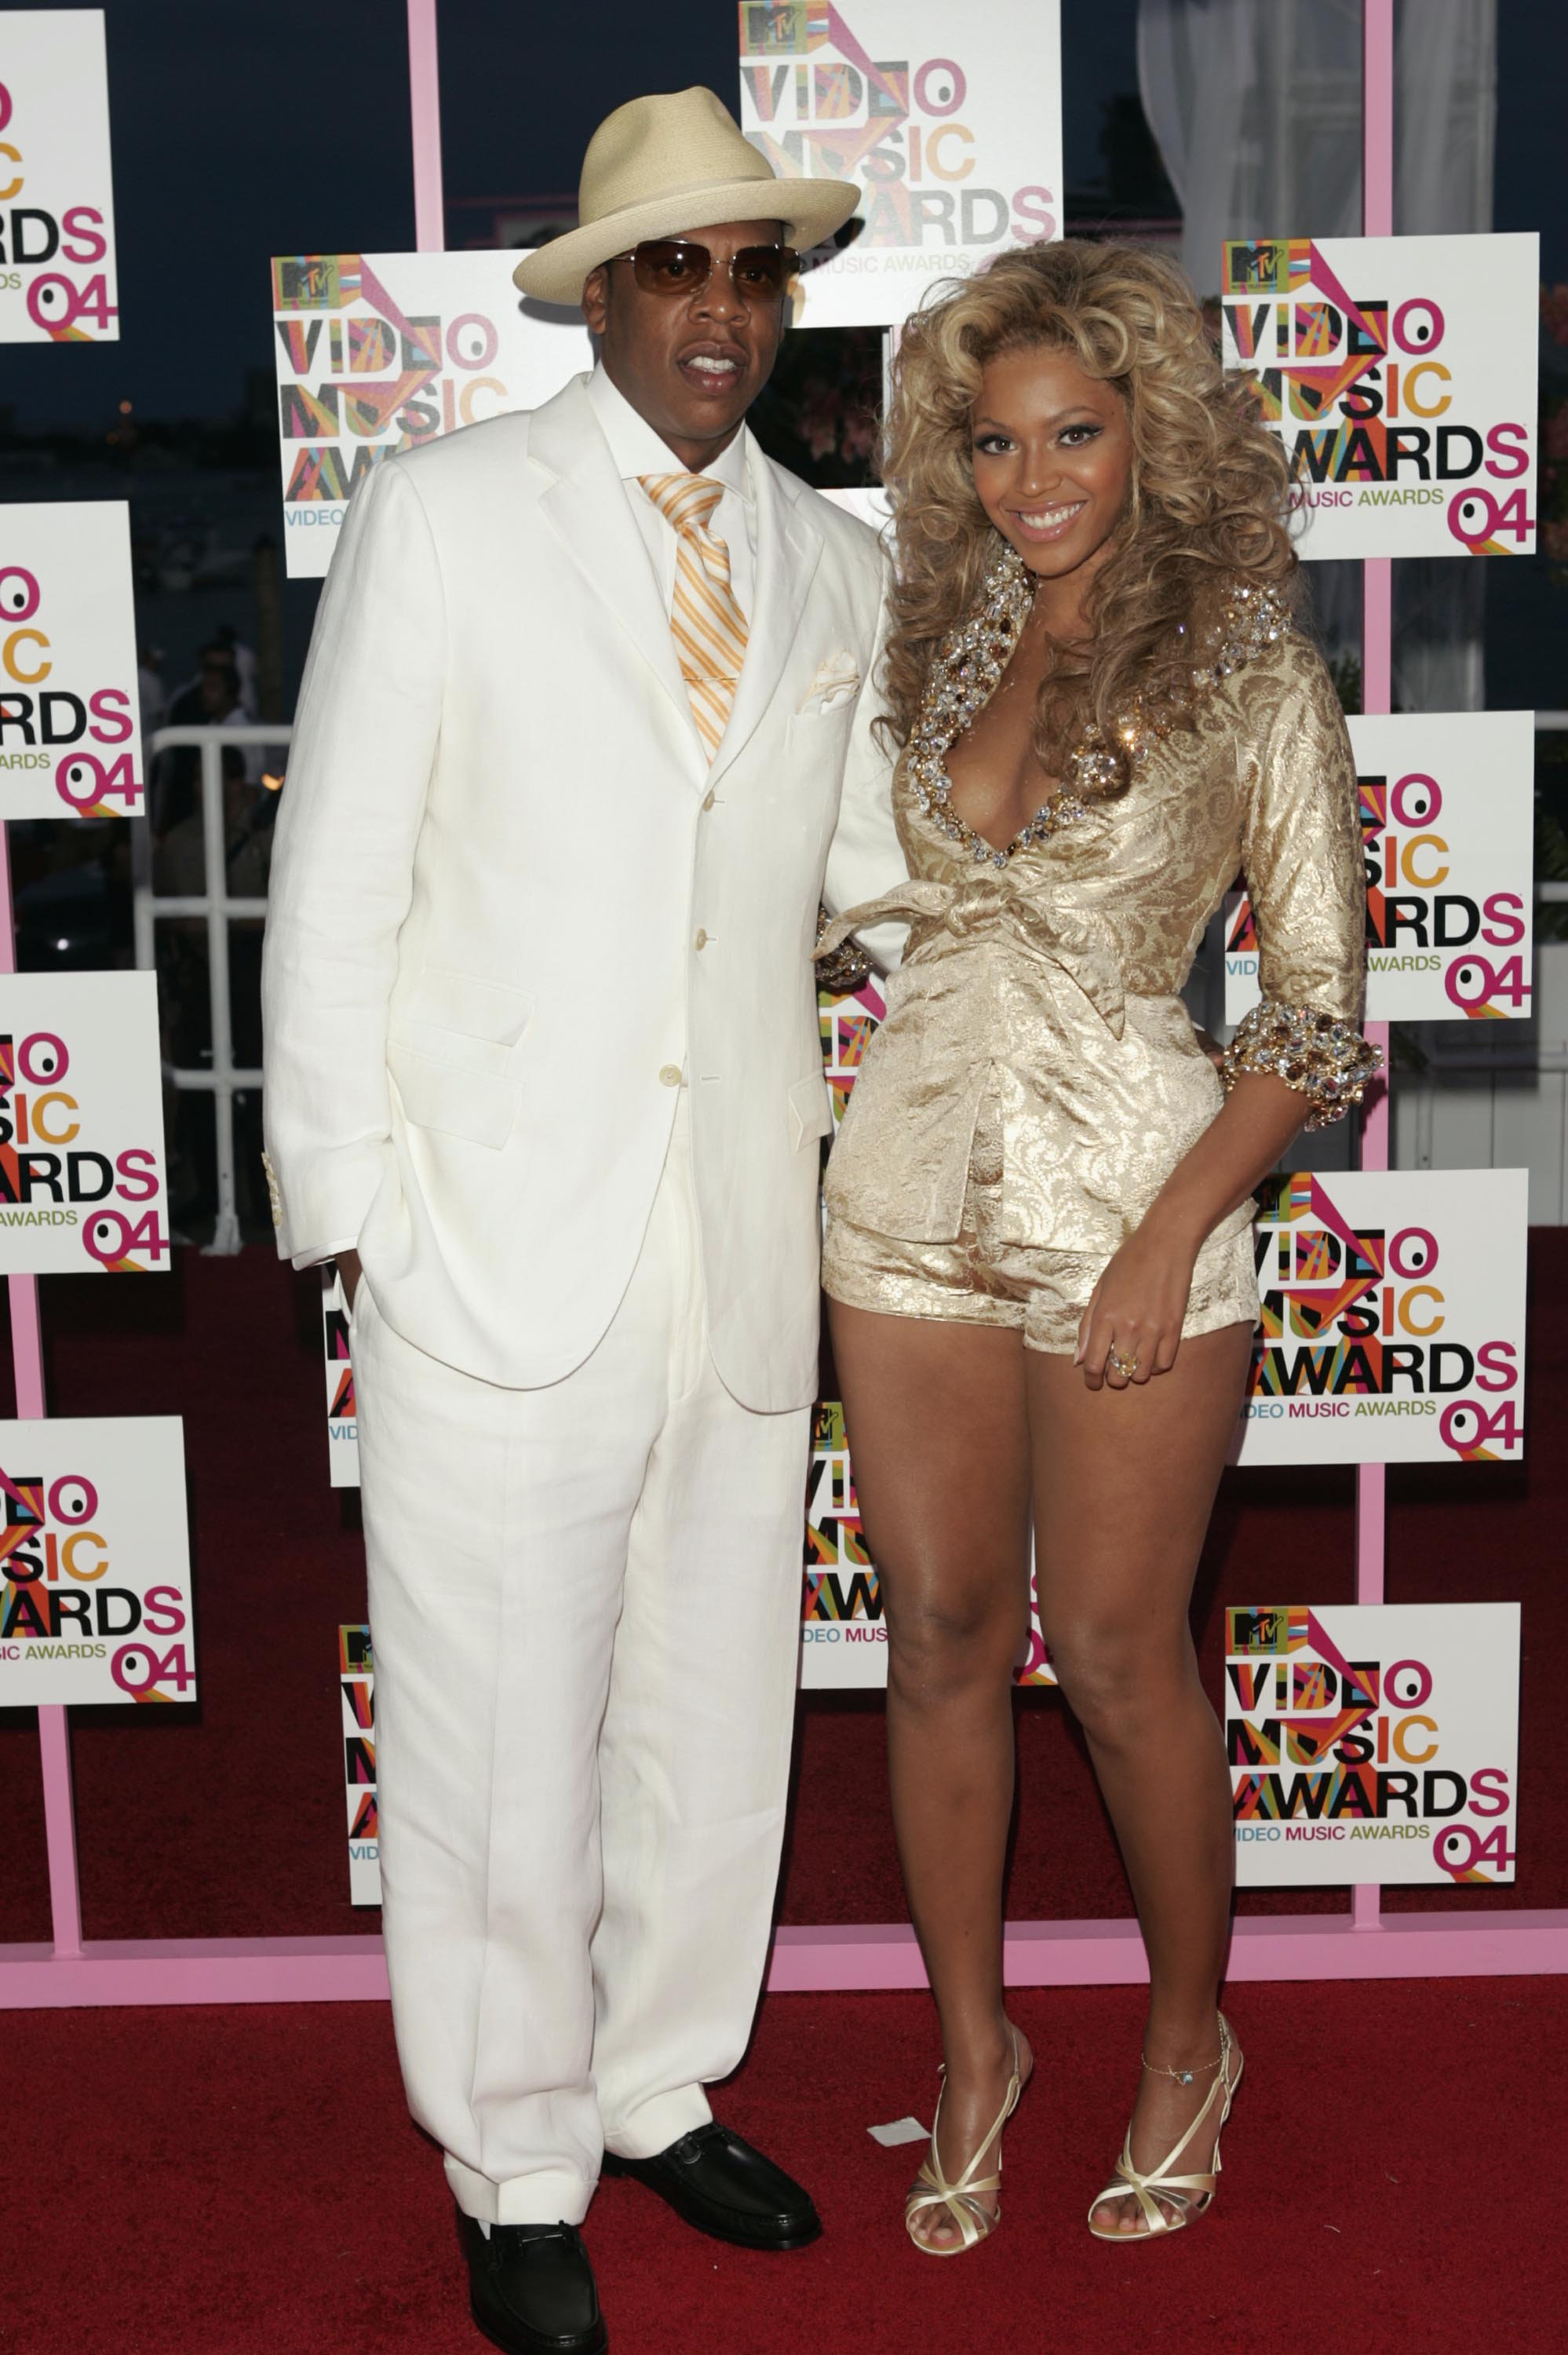 MIAMI - AUGUST 29:  Rapper/producer and nominee Jay-Z and singer Beyonce Knowles arrive at the 2004 MTV Video Music Awards at the American Airlines Arena August 29, 2004 in Miami, Florida.  (Photo by Peter Kramer/Getty Images)